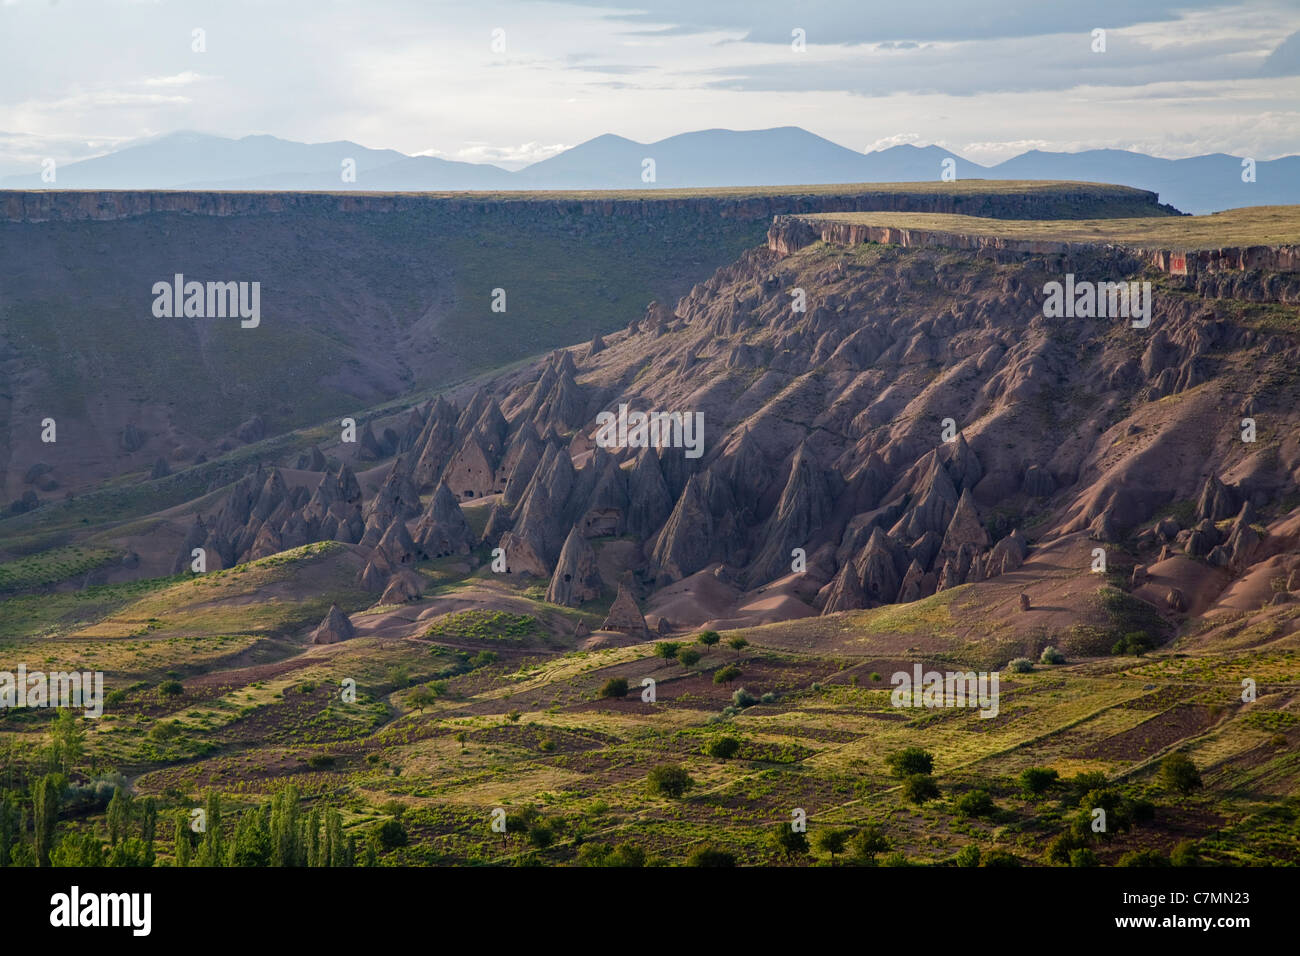 Scenic view of Ihlara Valley with fairy chimneys Turkey - Stock Image